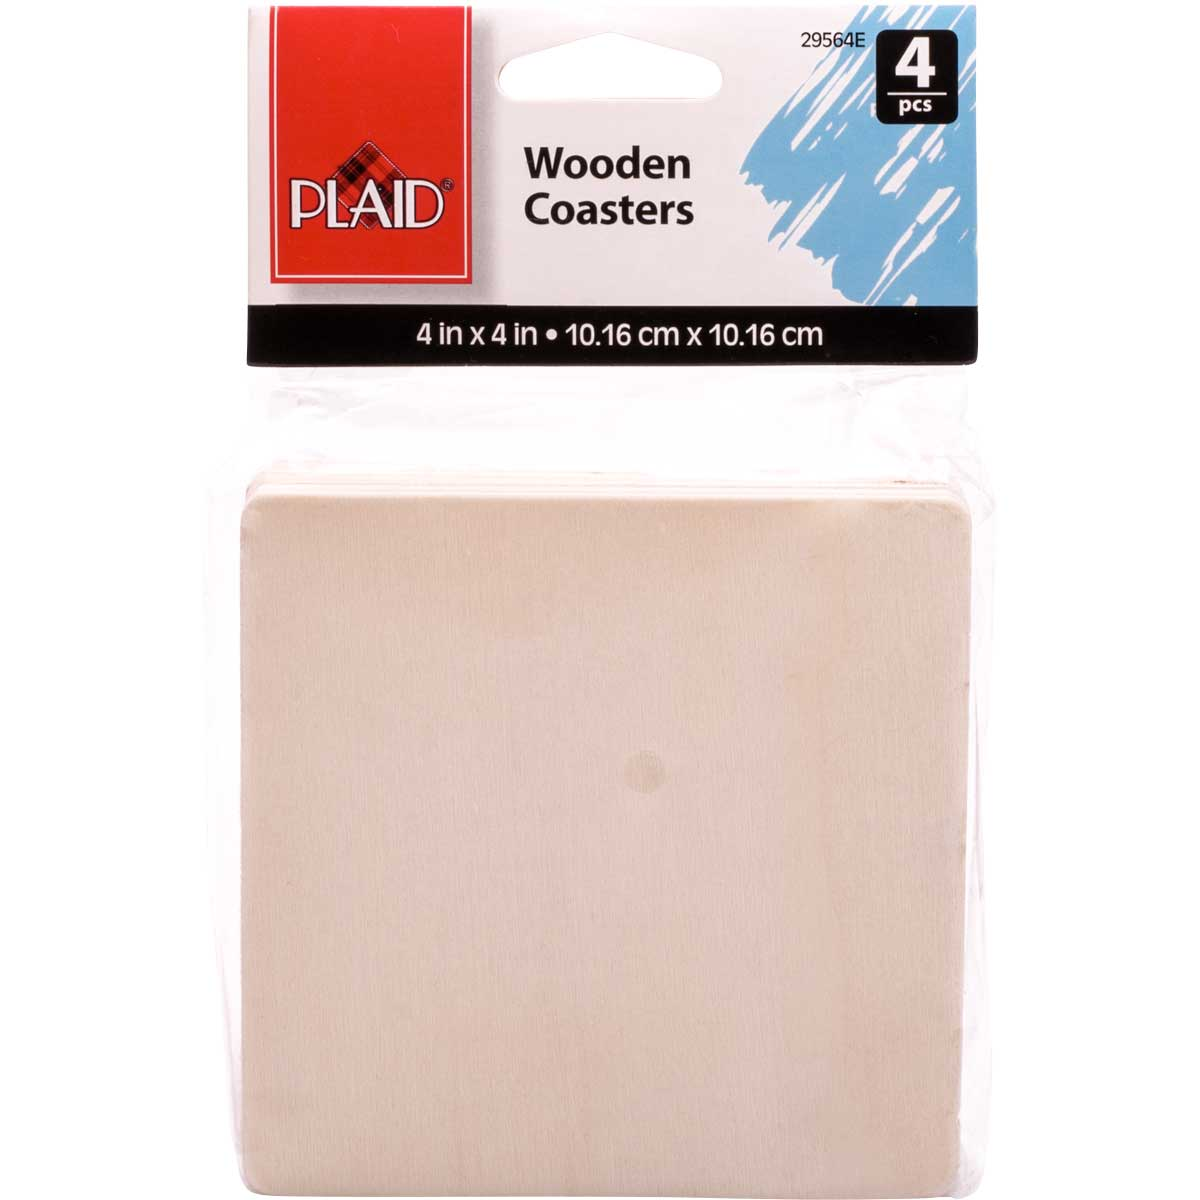 Plaid ® Wood Surfaces - Coasters - Square, 4 pc.